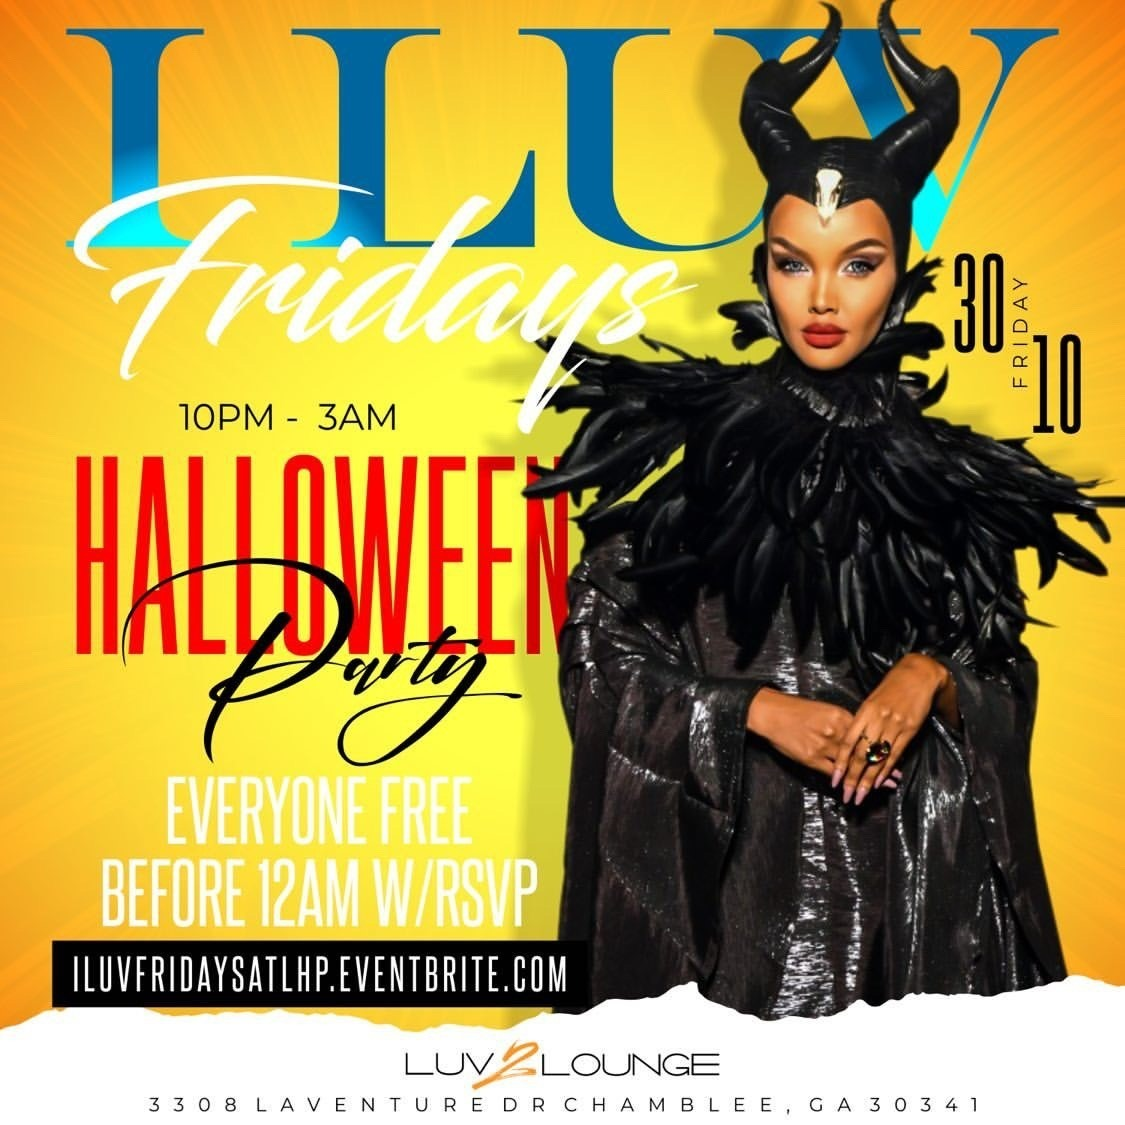 I LUV FRIDAYS Atlanta Halloween Party 2020 | No Cover before 12am w/ RSVP